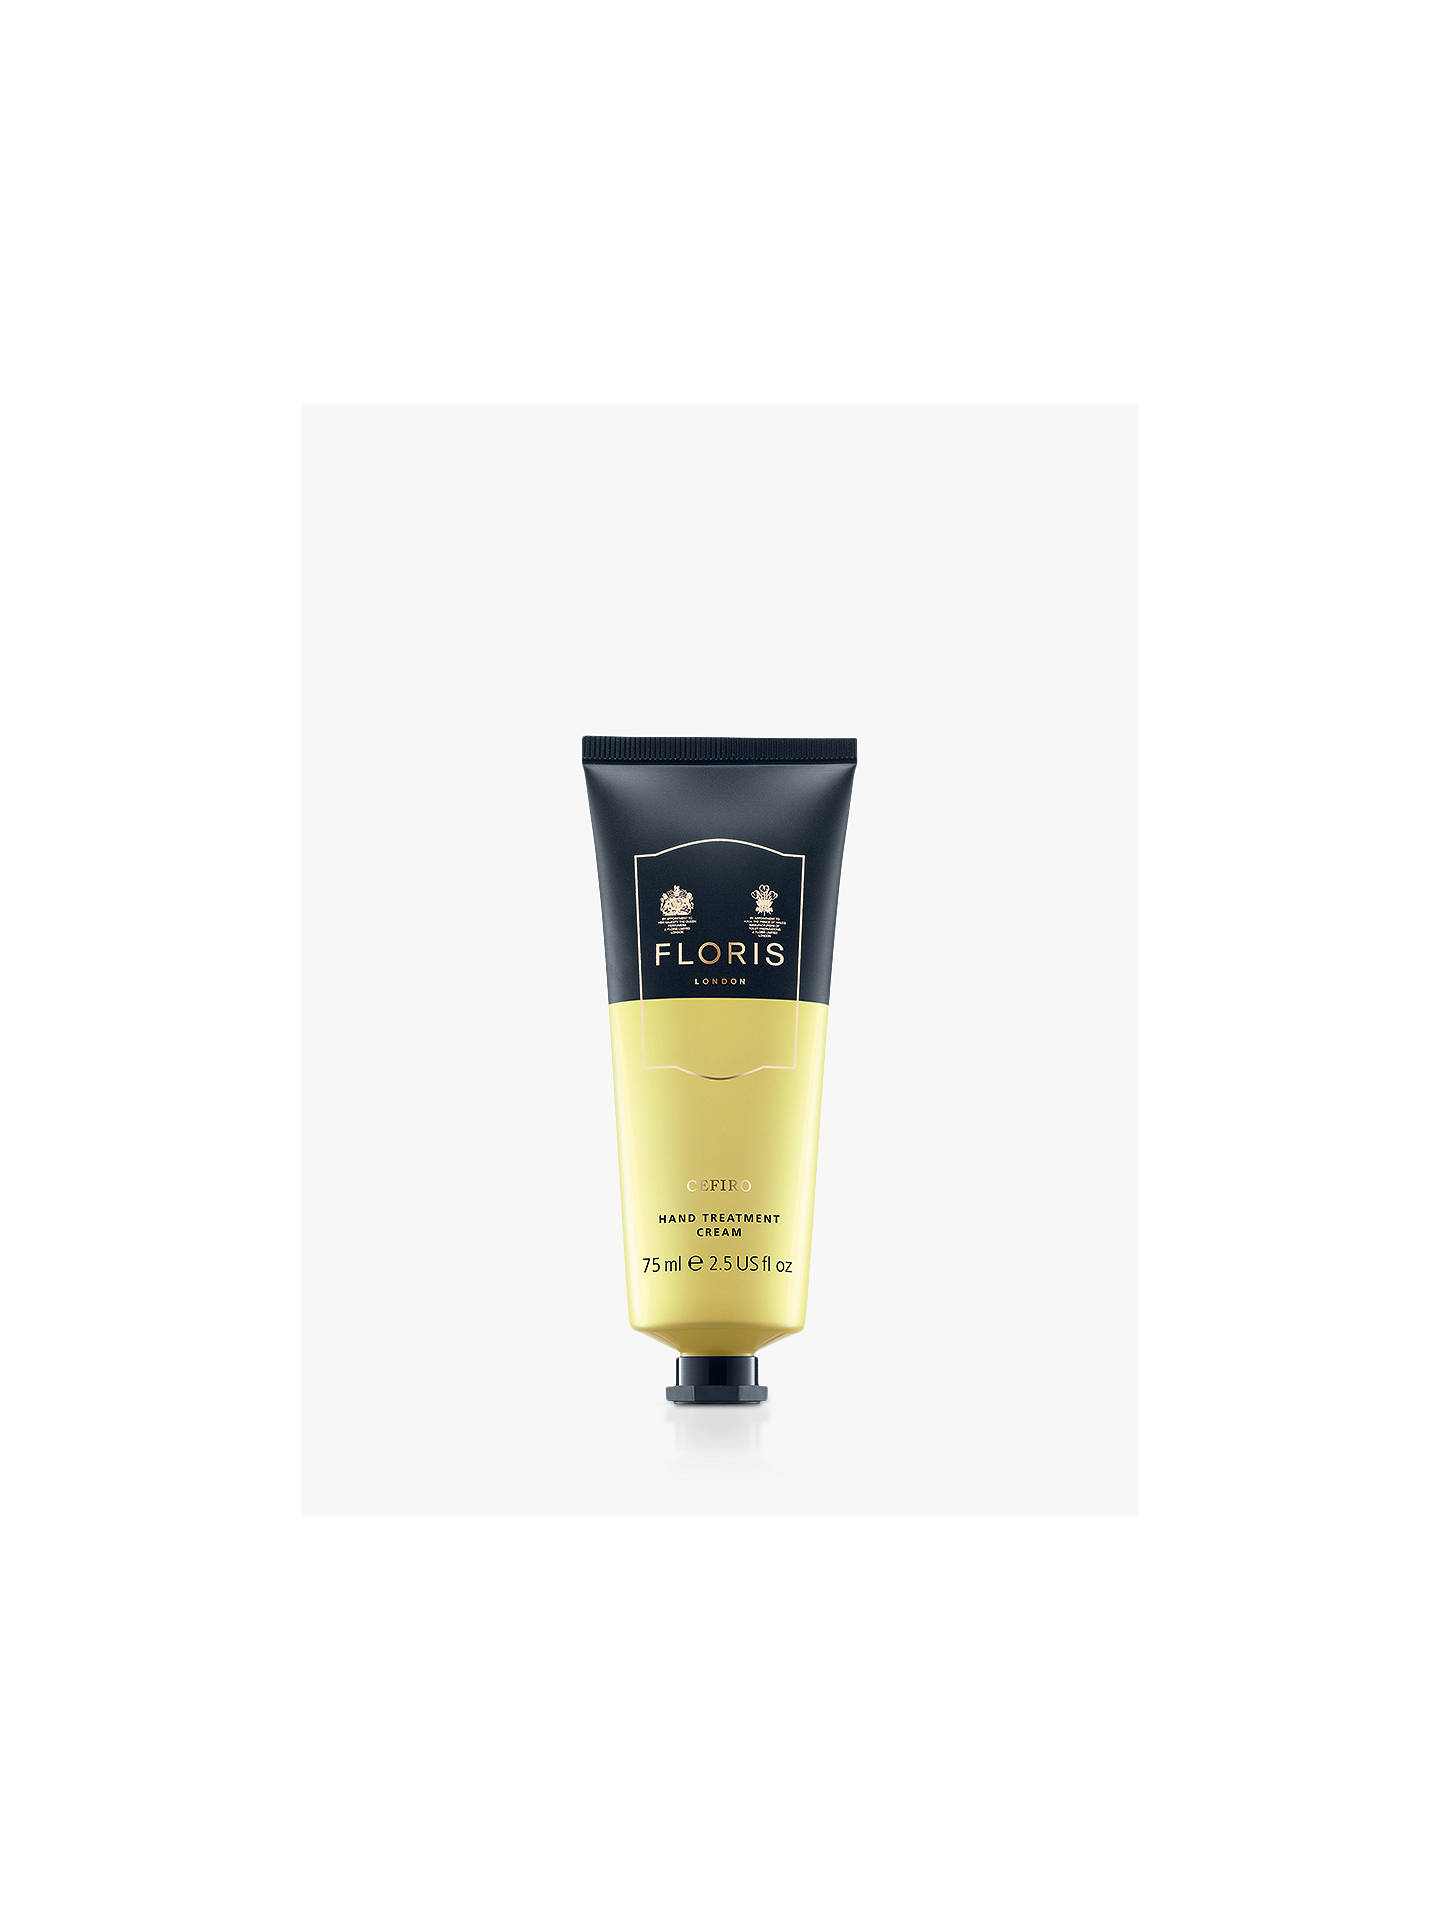 Floris Cefiro Hand Treatment Cream, 75ml